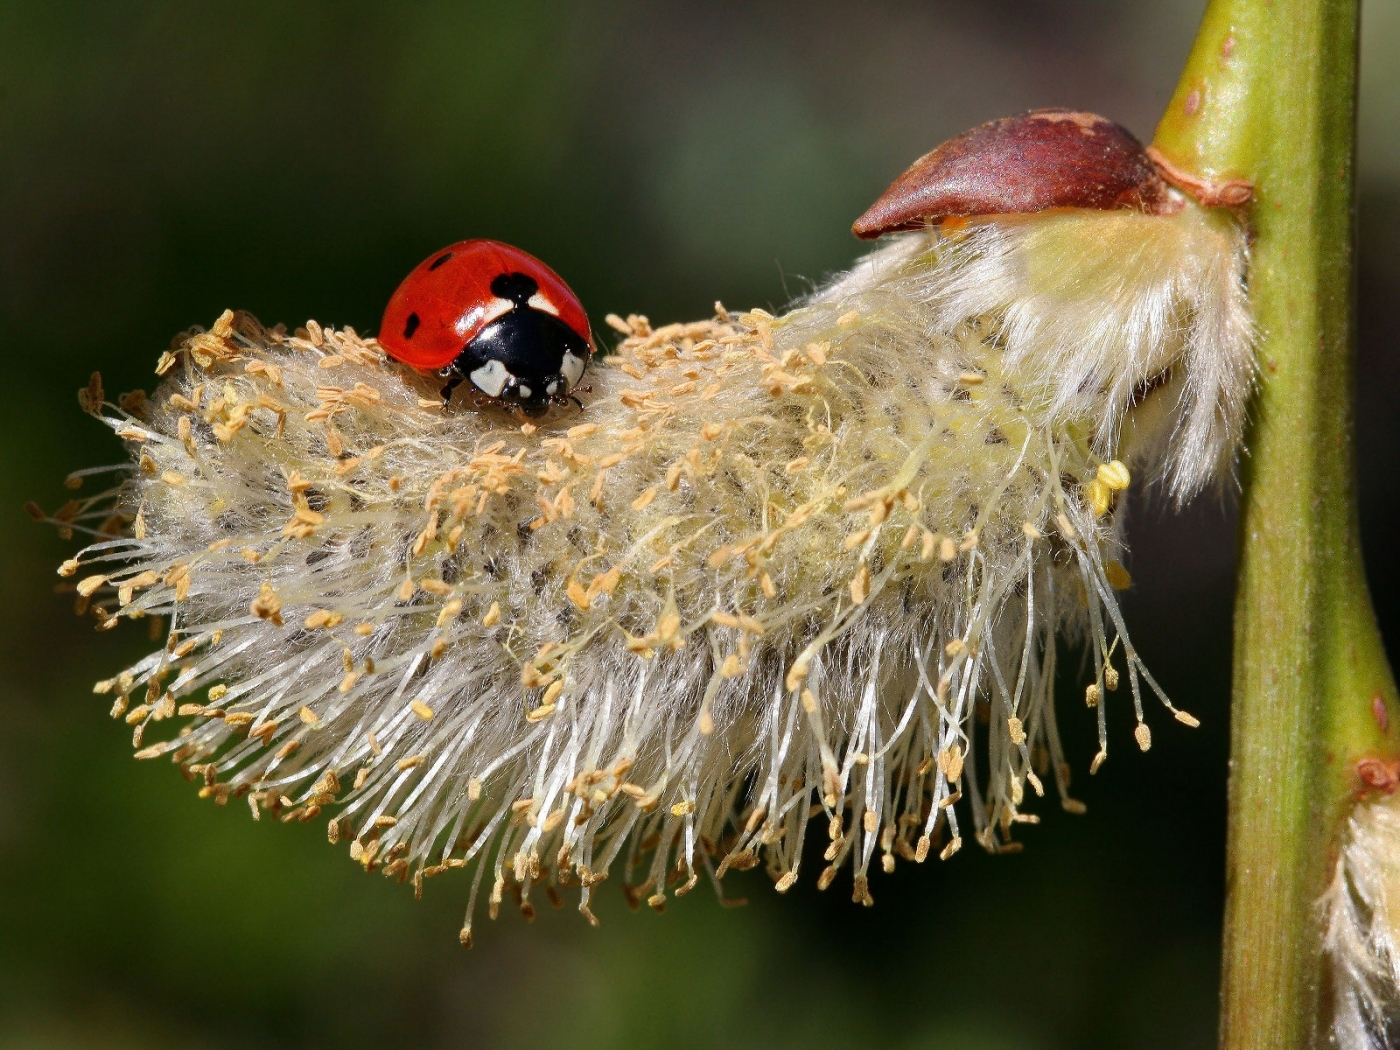 28111 download wallpaper Insects, Ladybugs screensavers and pictures for free